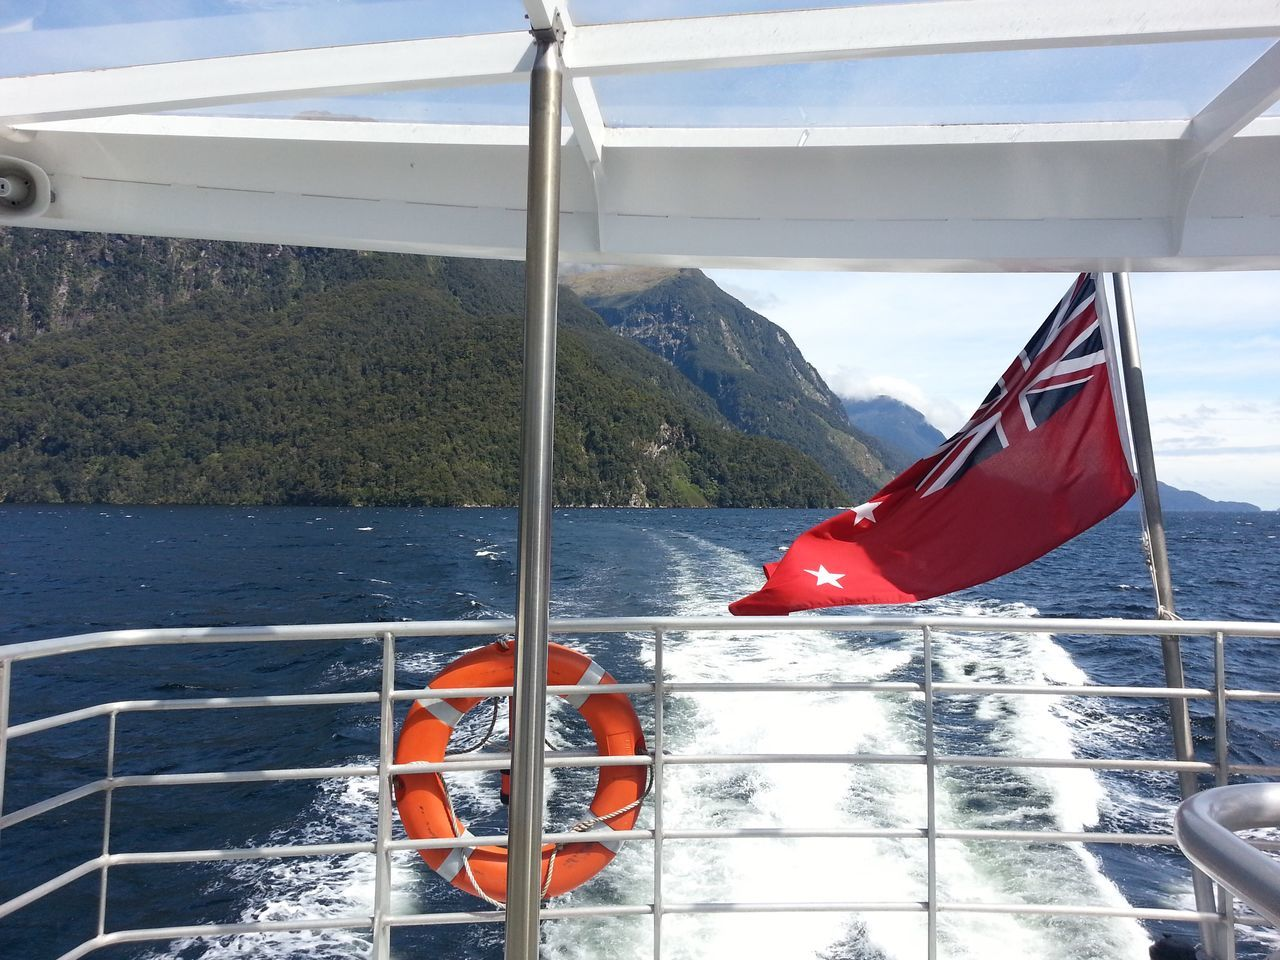 Cruising... Miles Away Boat Boattrip Doubtful Sound New Zealand Flag Water Mountains Nature Scenery